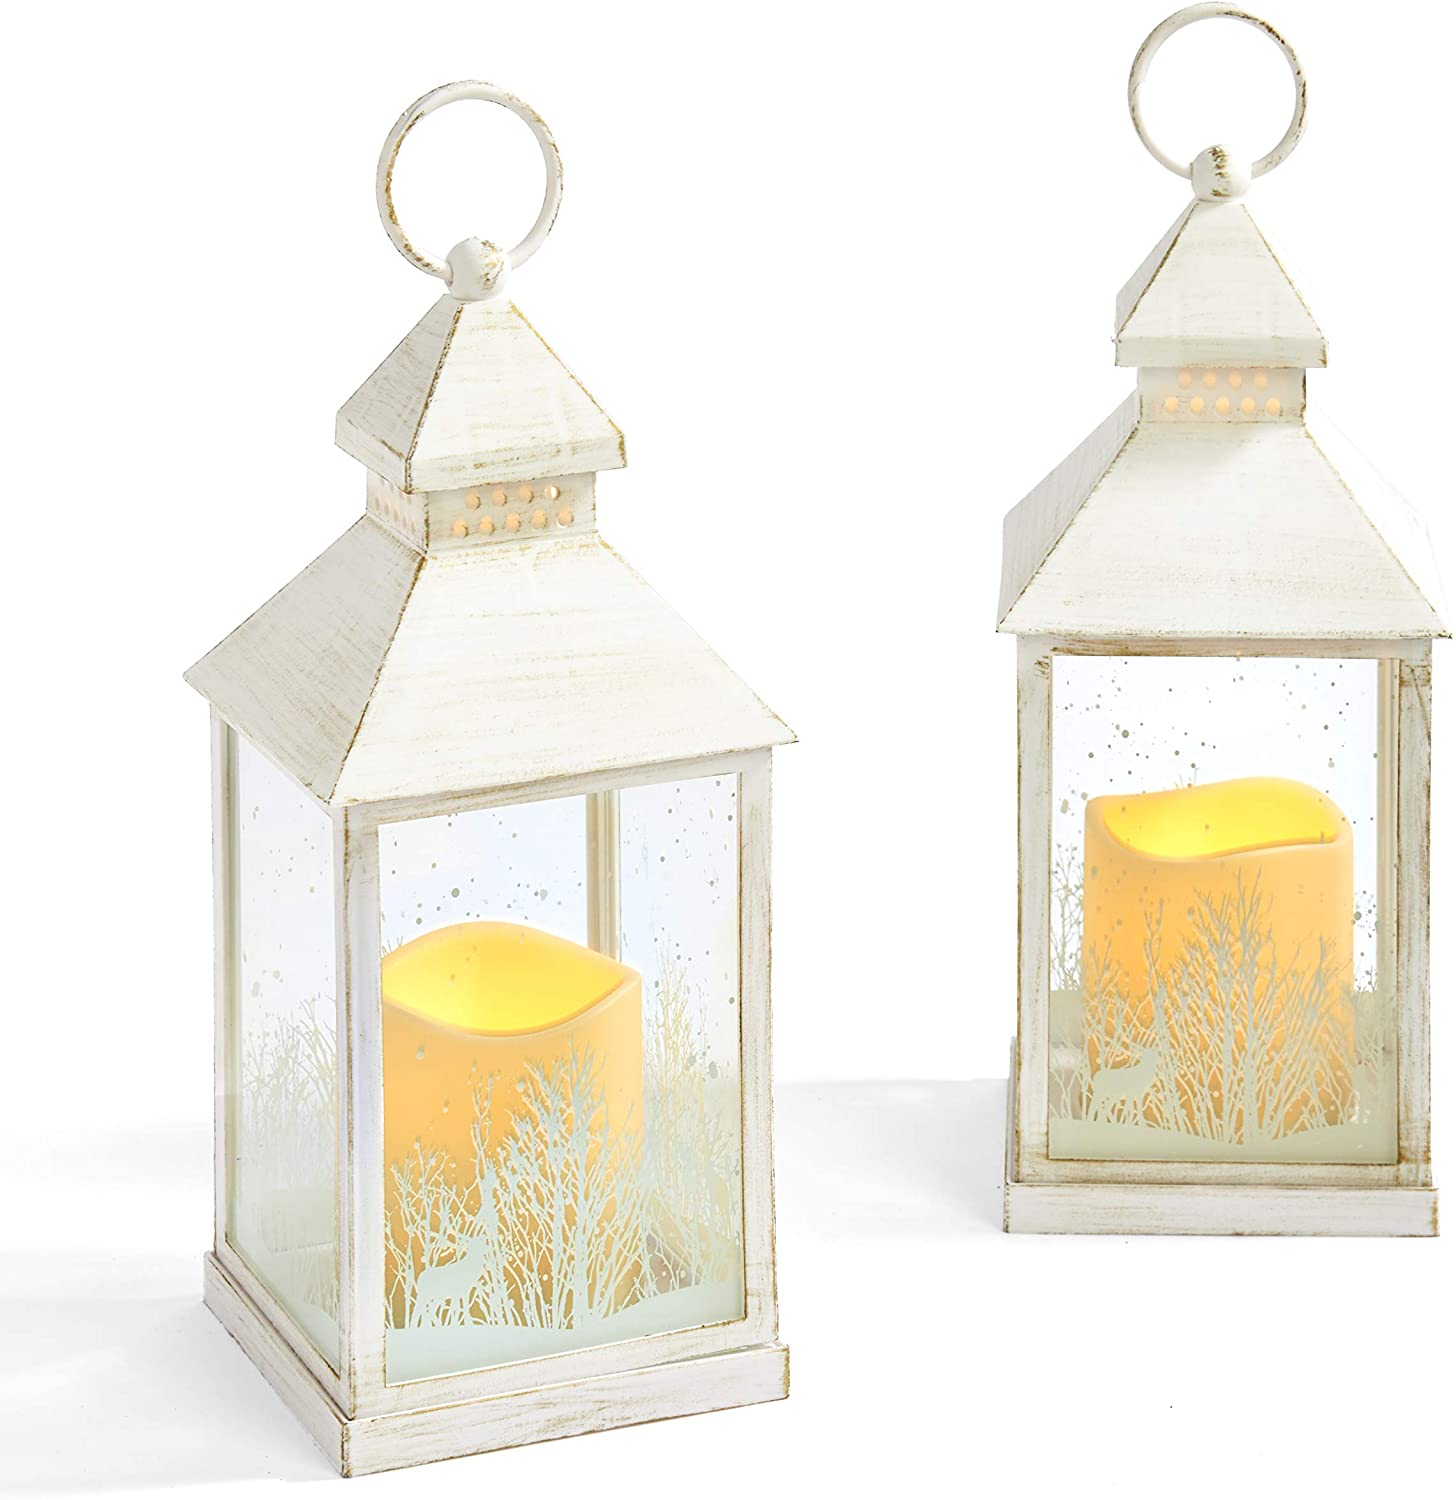 Winter Candle Lantern Set - 9 Inch Decorative Lanterns with LED Flameless Candles, White Distressed Finish, Battery Operated, Timer Setting, Farmhouse Holiday Decoration- Set of 2